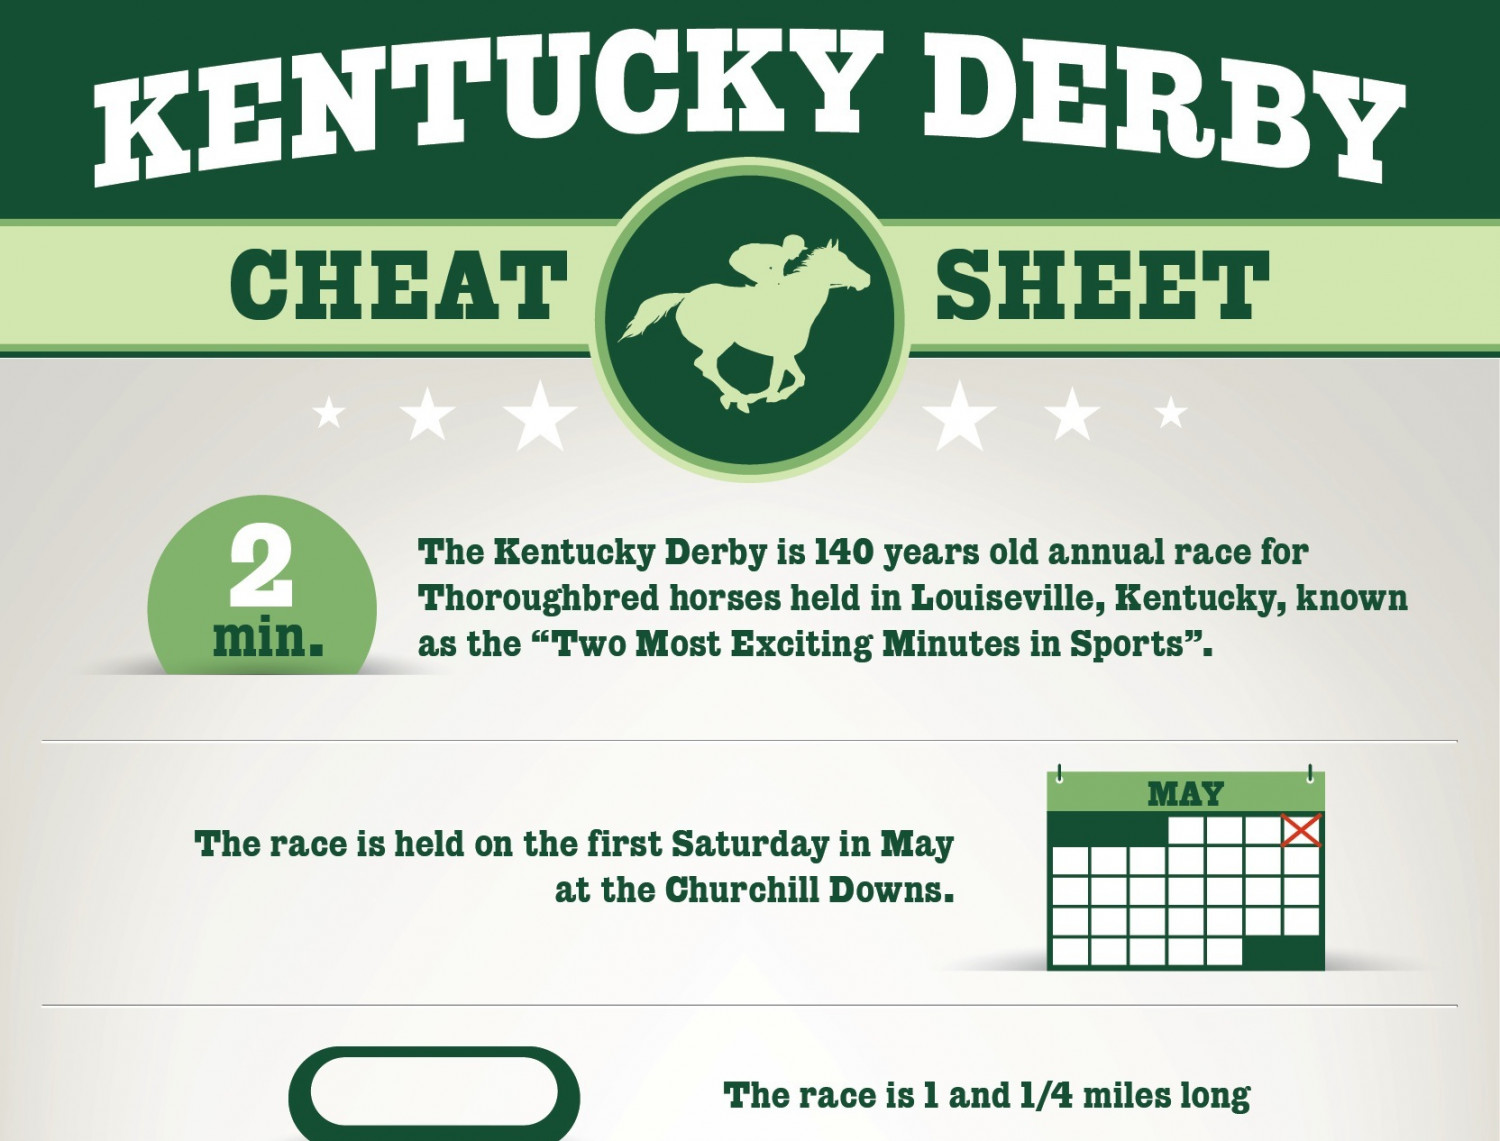 Kentucky Derby Cheat Sheet Infographic